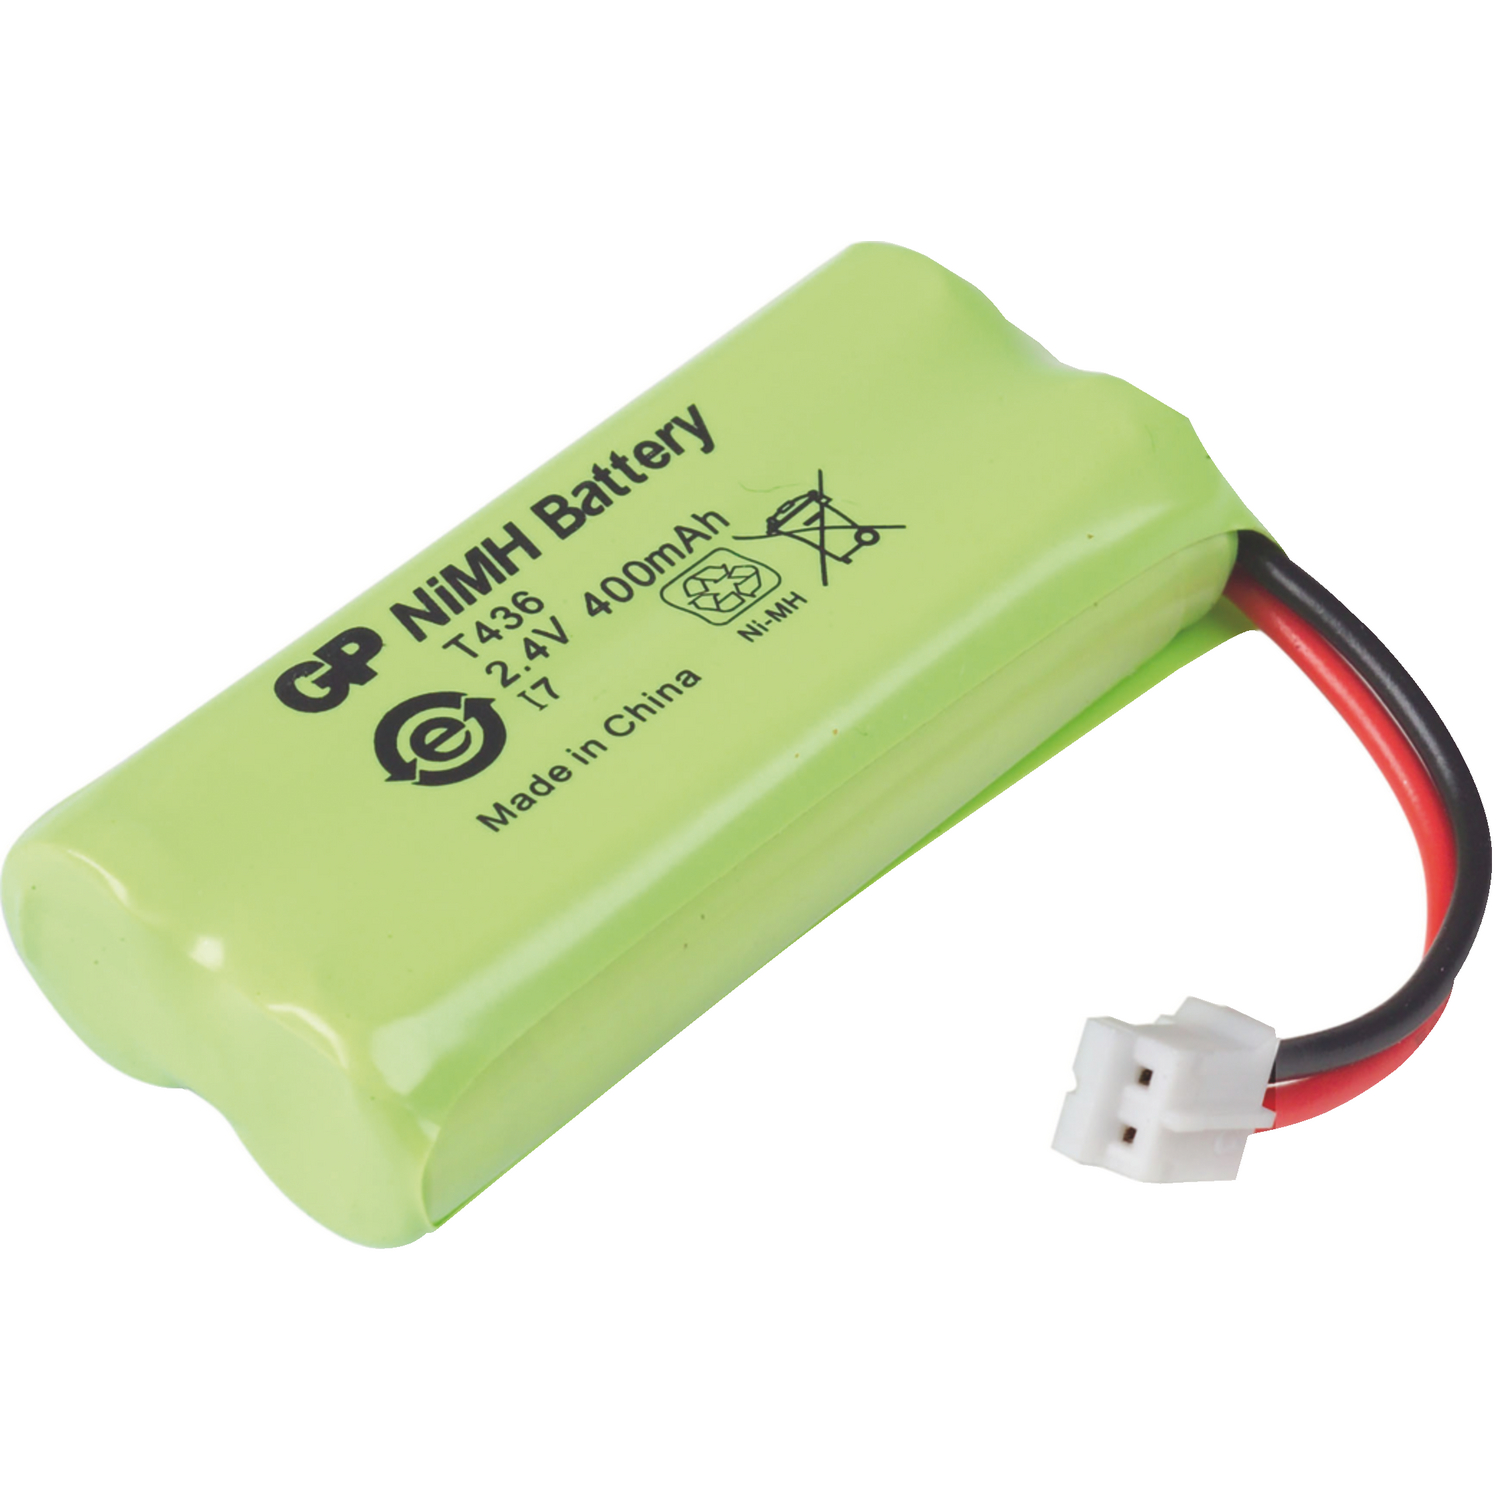 Accu Batterien Accu T436 Gp Rechargeable Nimh Battery Pack 2 4 V 400